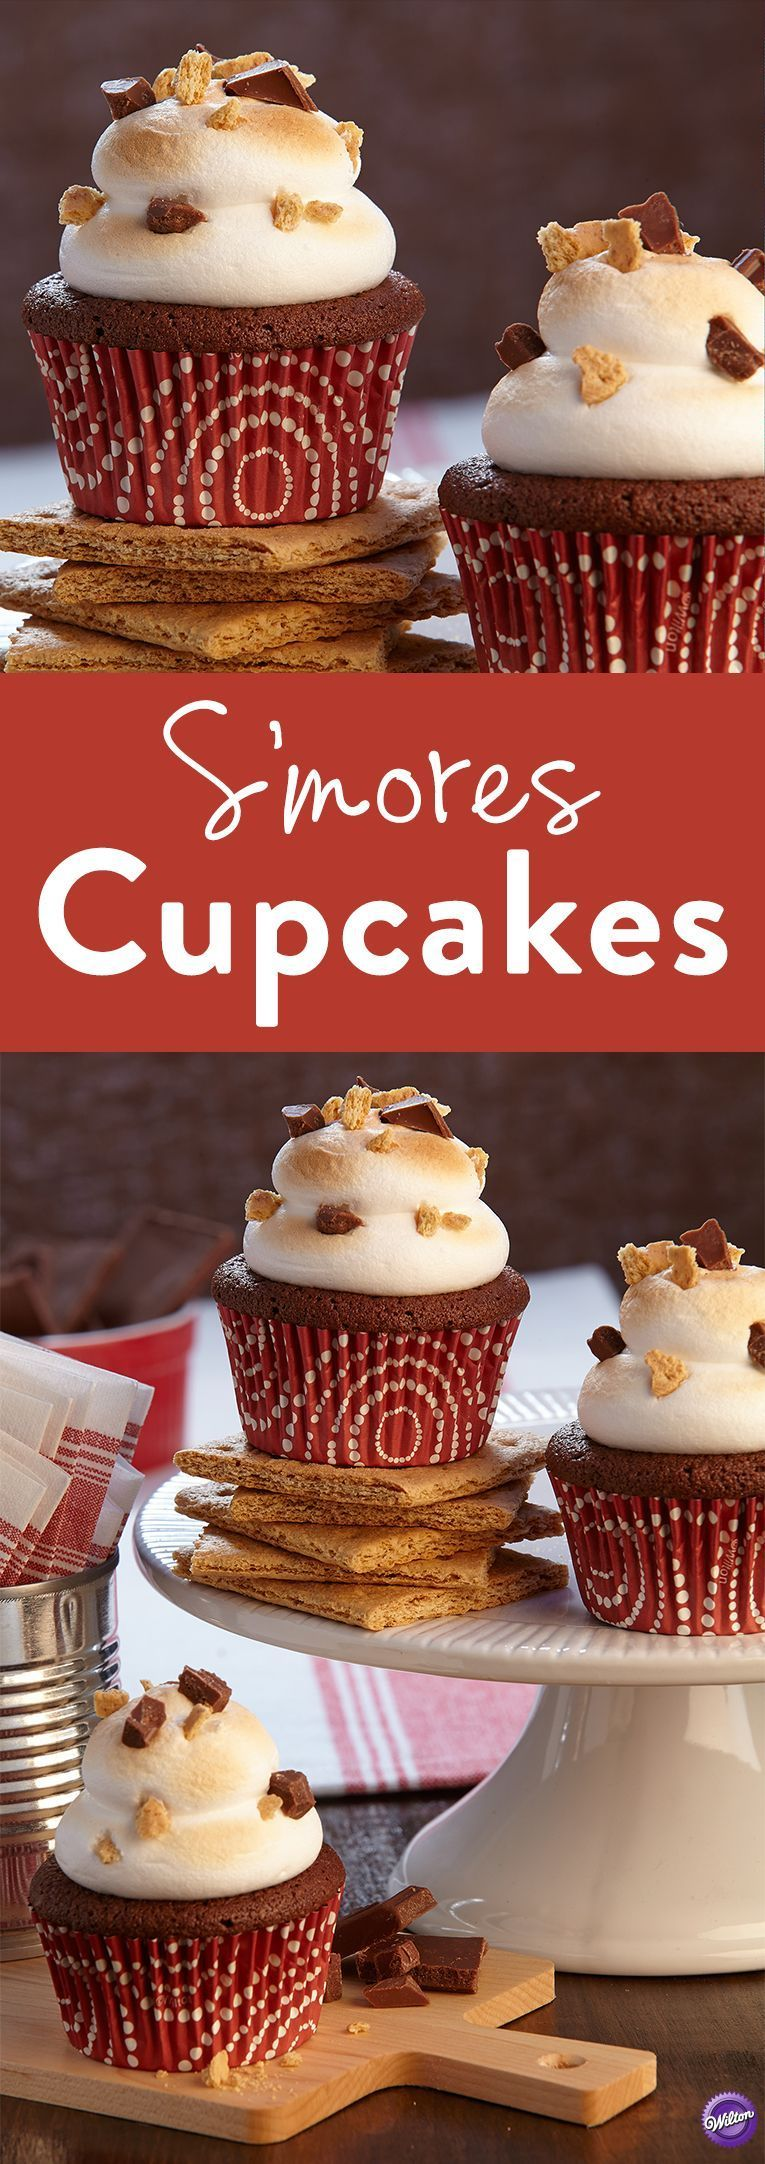 How to Make S'mores Cupcakes - Learn how to make these delicious S'mores Cupcakes and enjoy your favorite memories of childhood camping trips, without the bug bites!How to Make S'mores Cupcakes - Learn how to make these delicious S'mores Cupcakes and enjoy your favorite memories of childhood camping trips, without the bug bites!